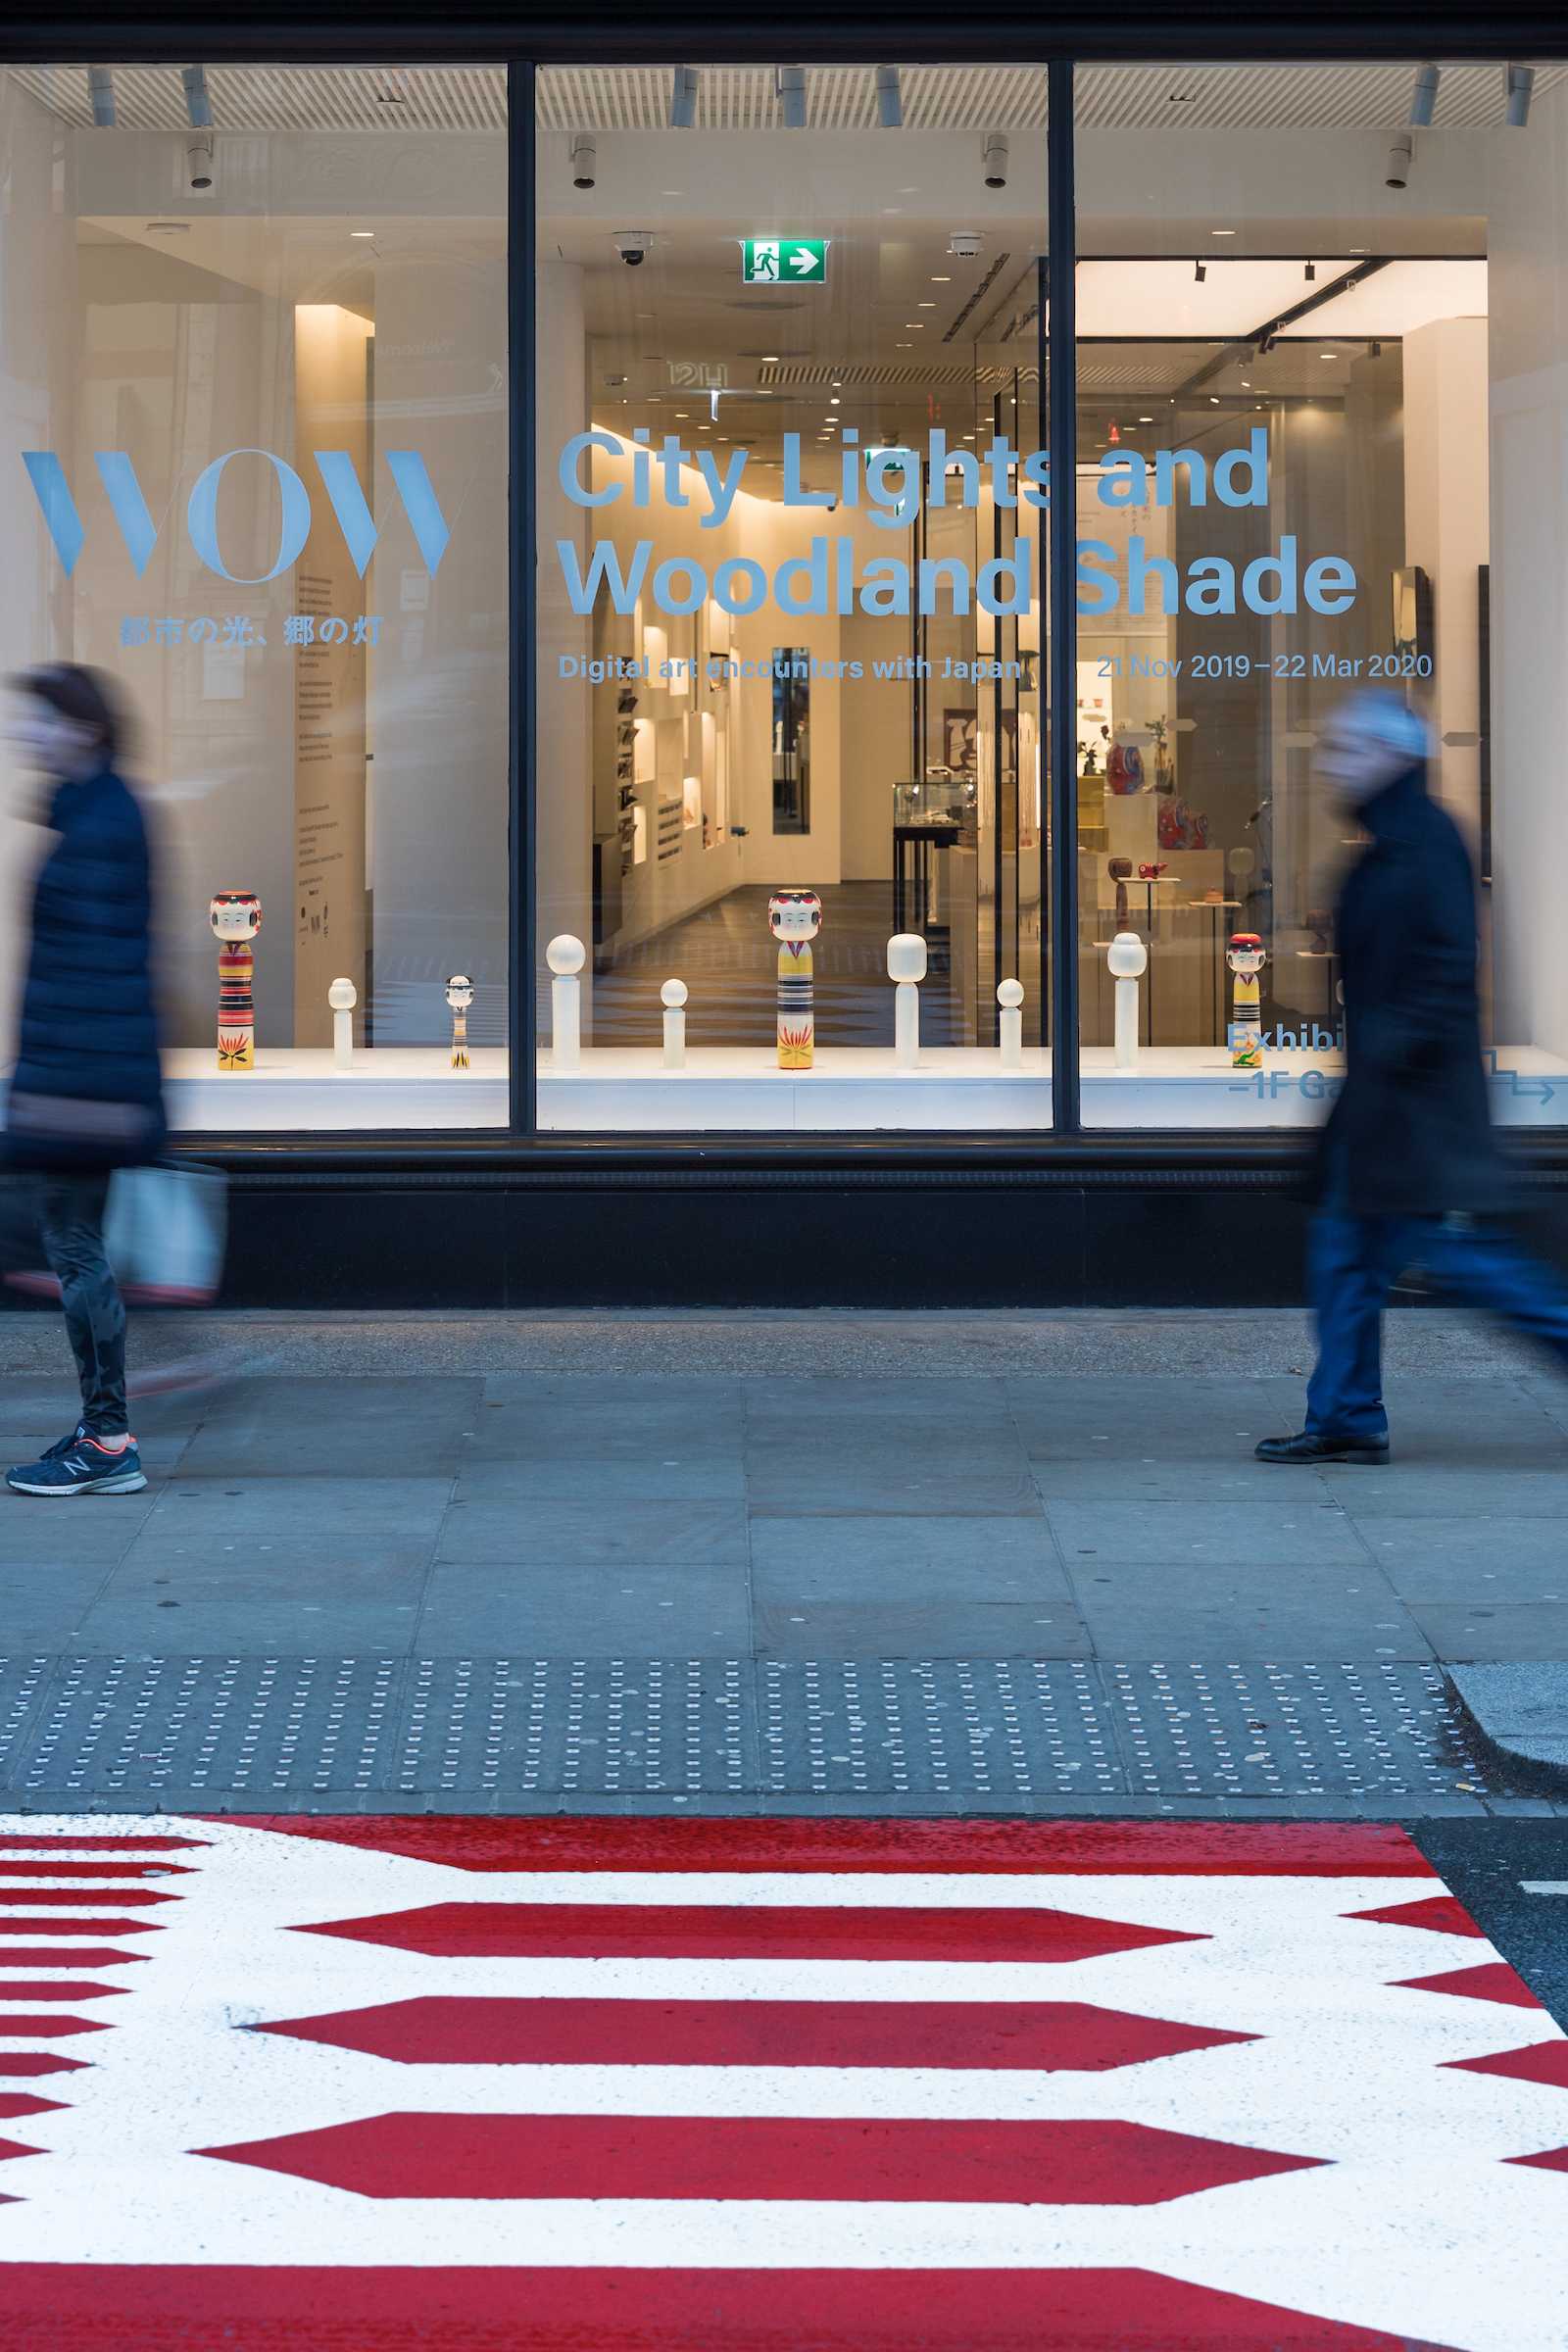 WOW City Lights and Woodland Shade exhibition at Japan House London 21 Nov 2019 22 March 2020 6